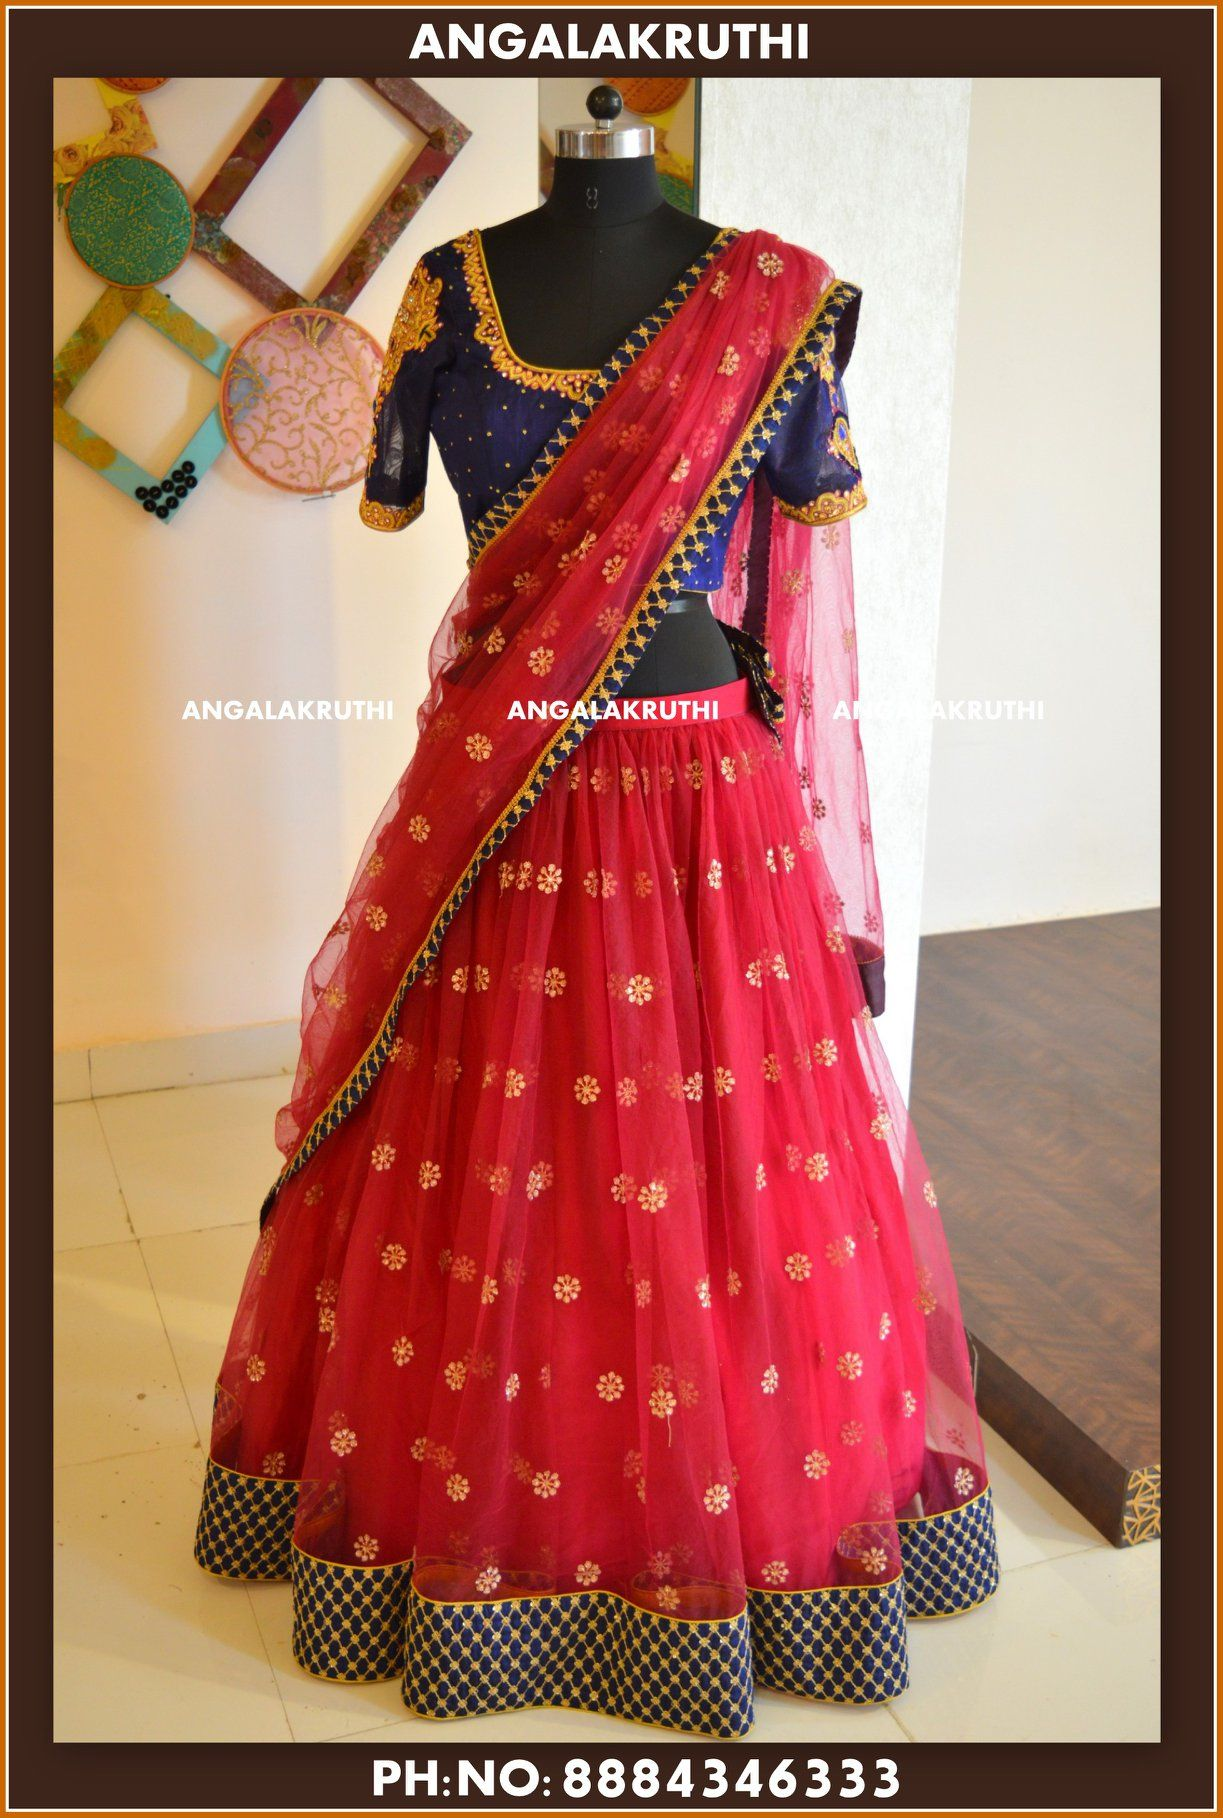 e3e7c93a08 Beautiful paradise pink and blue color combination lehenga and blouse with  net dupatta. Blouse with hand embroidery thread work. 31 August 2018